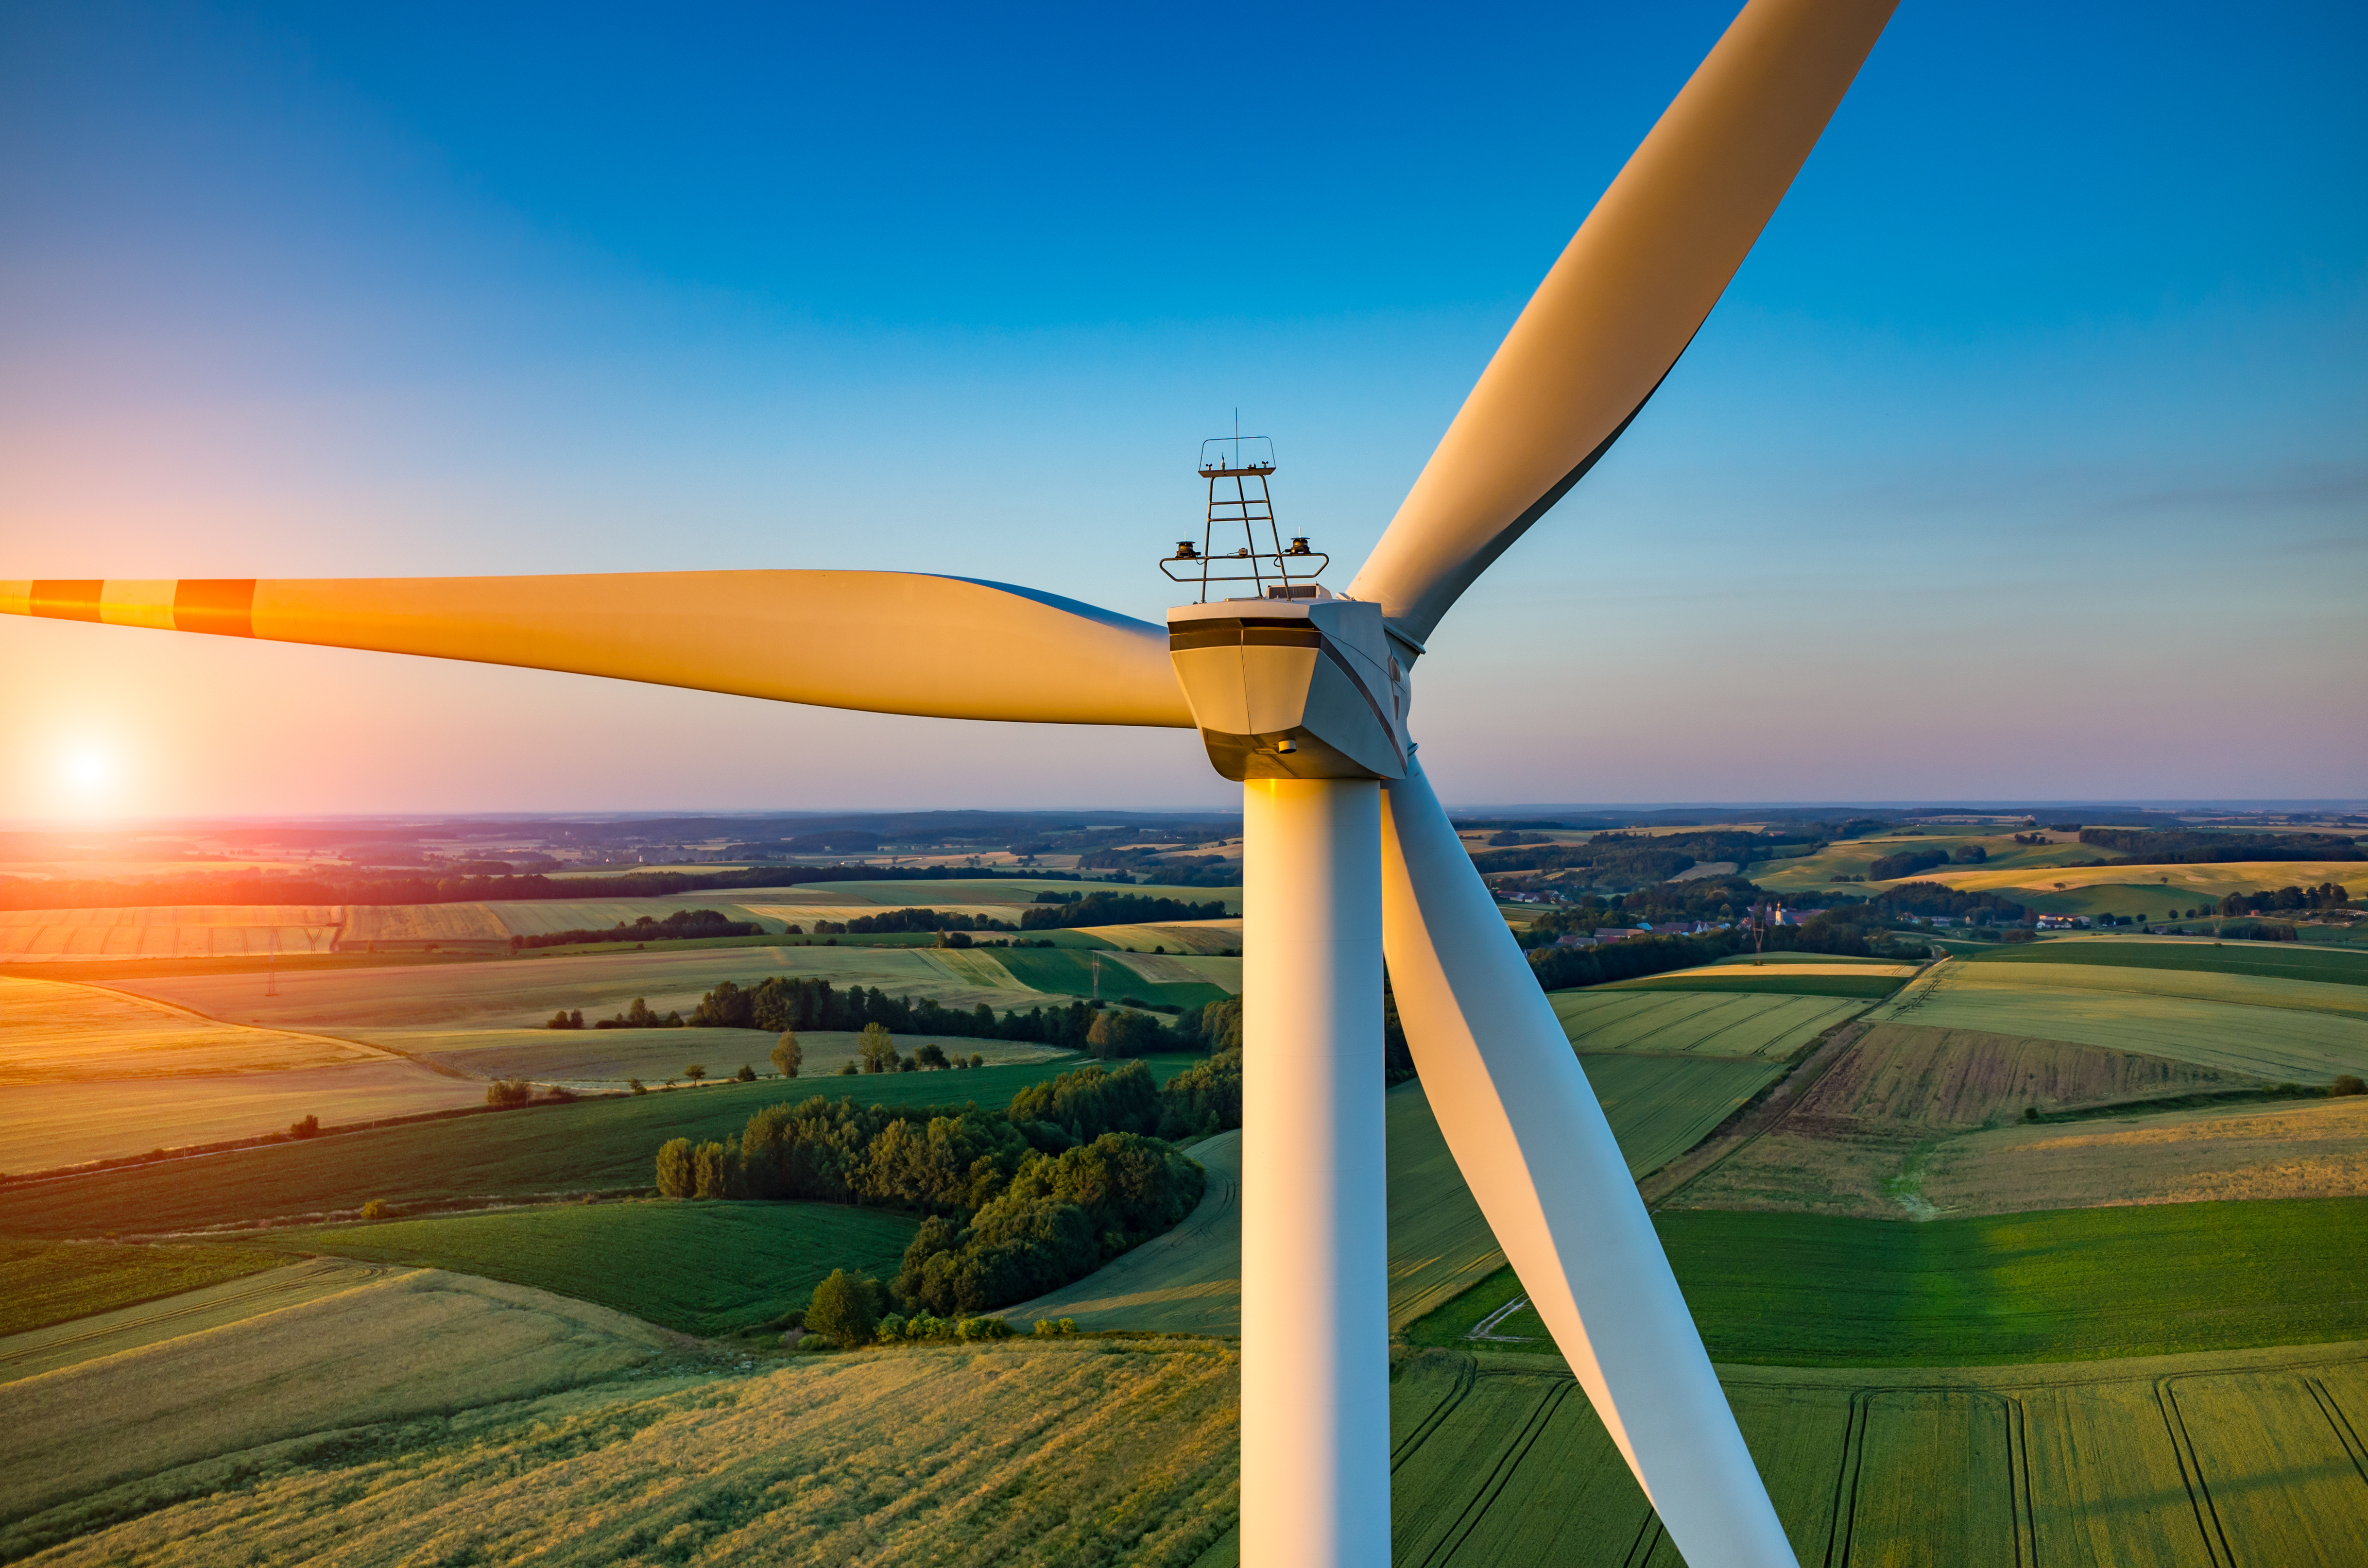 wind_turbine_with_grassy_hills_in_background